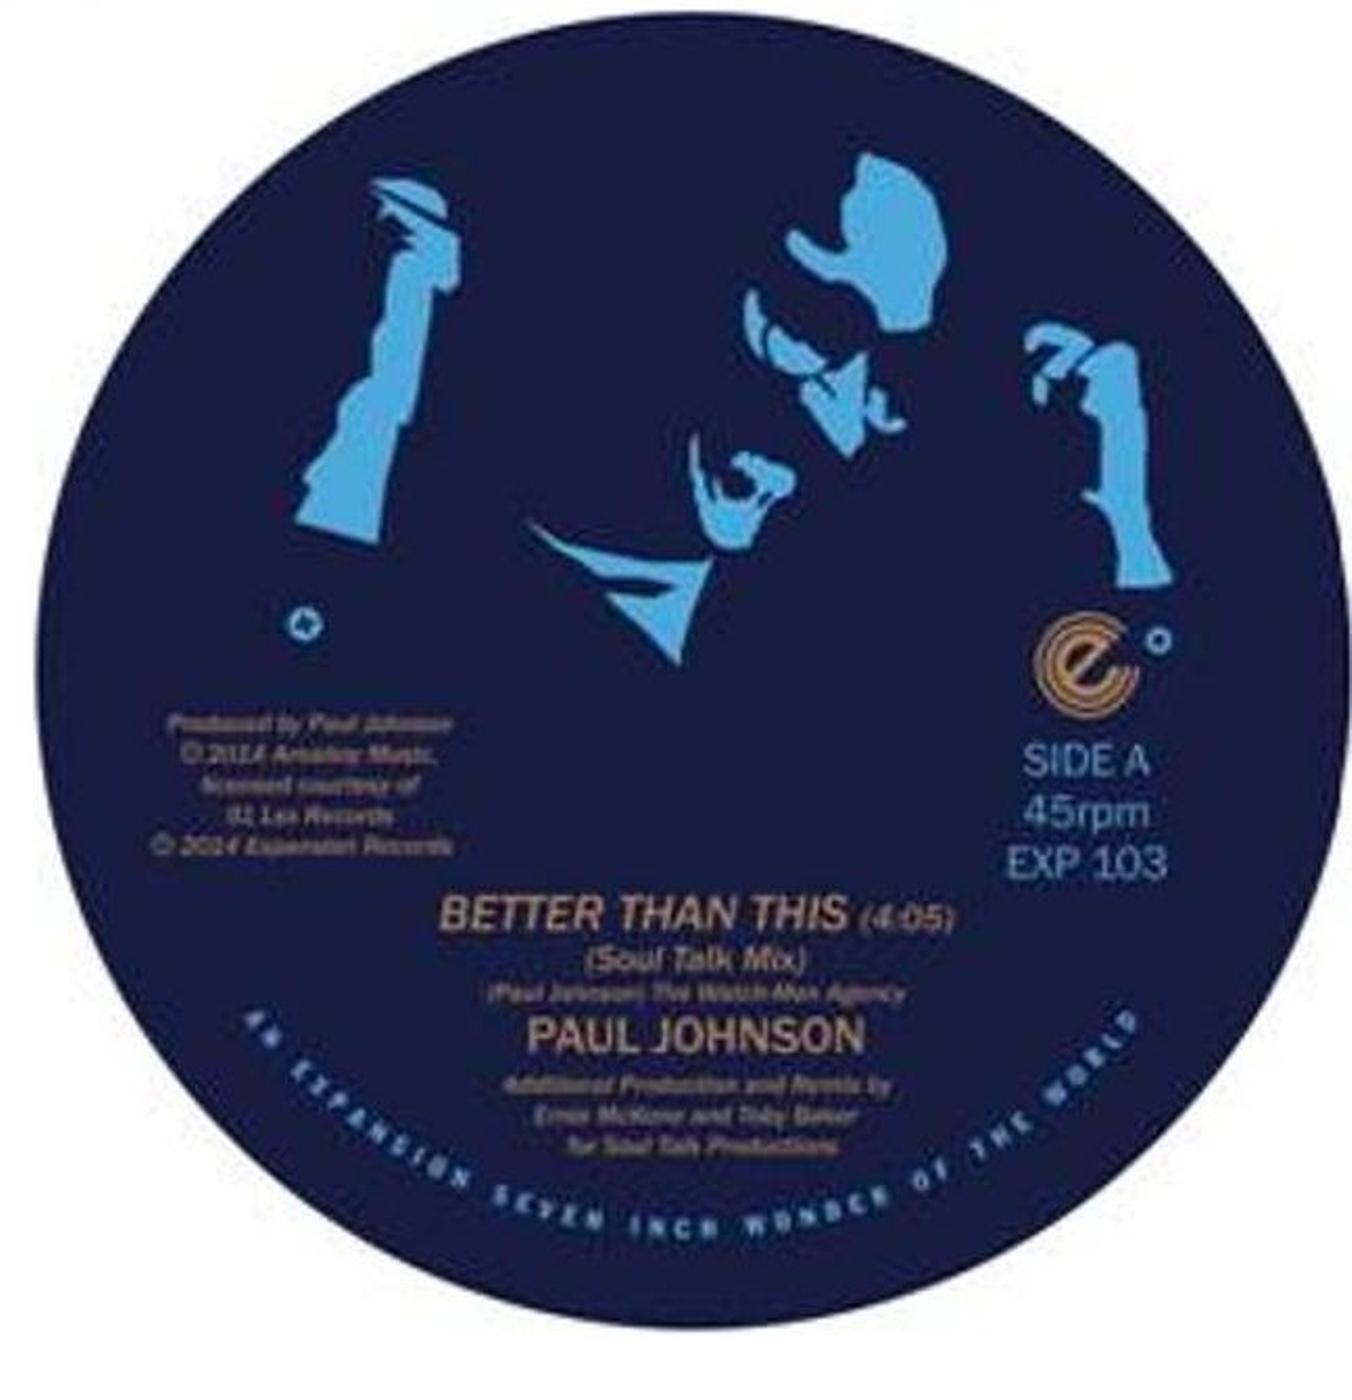 Paul Johnson/BETTER THAN(DEGO & KAIDI)7""